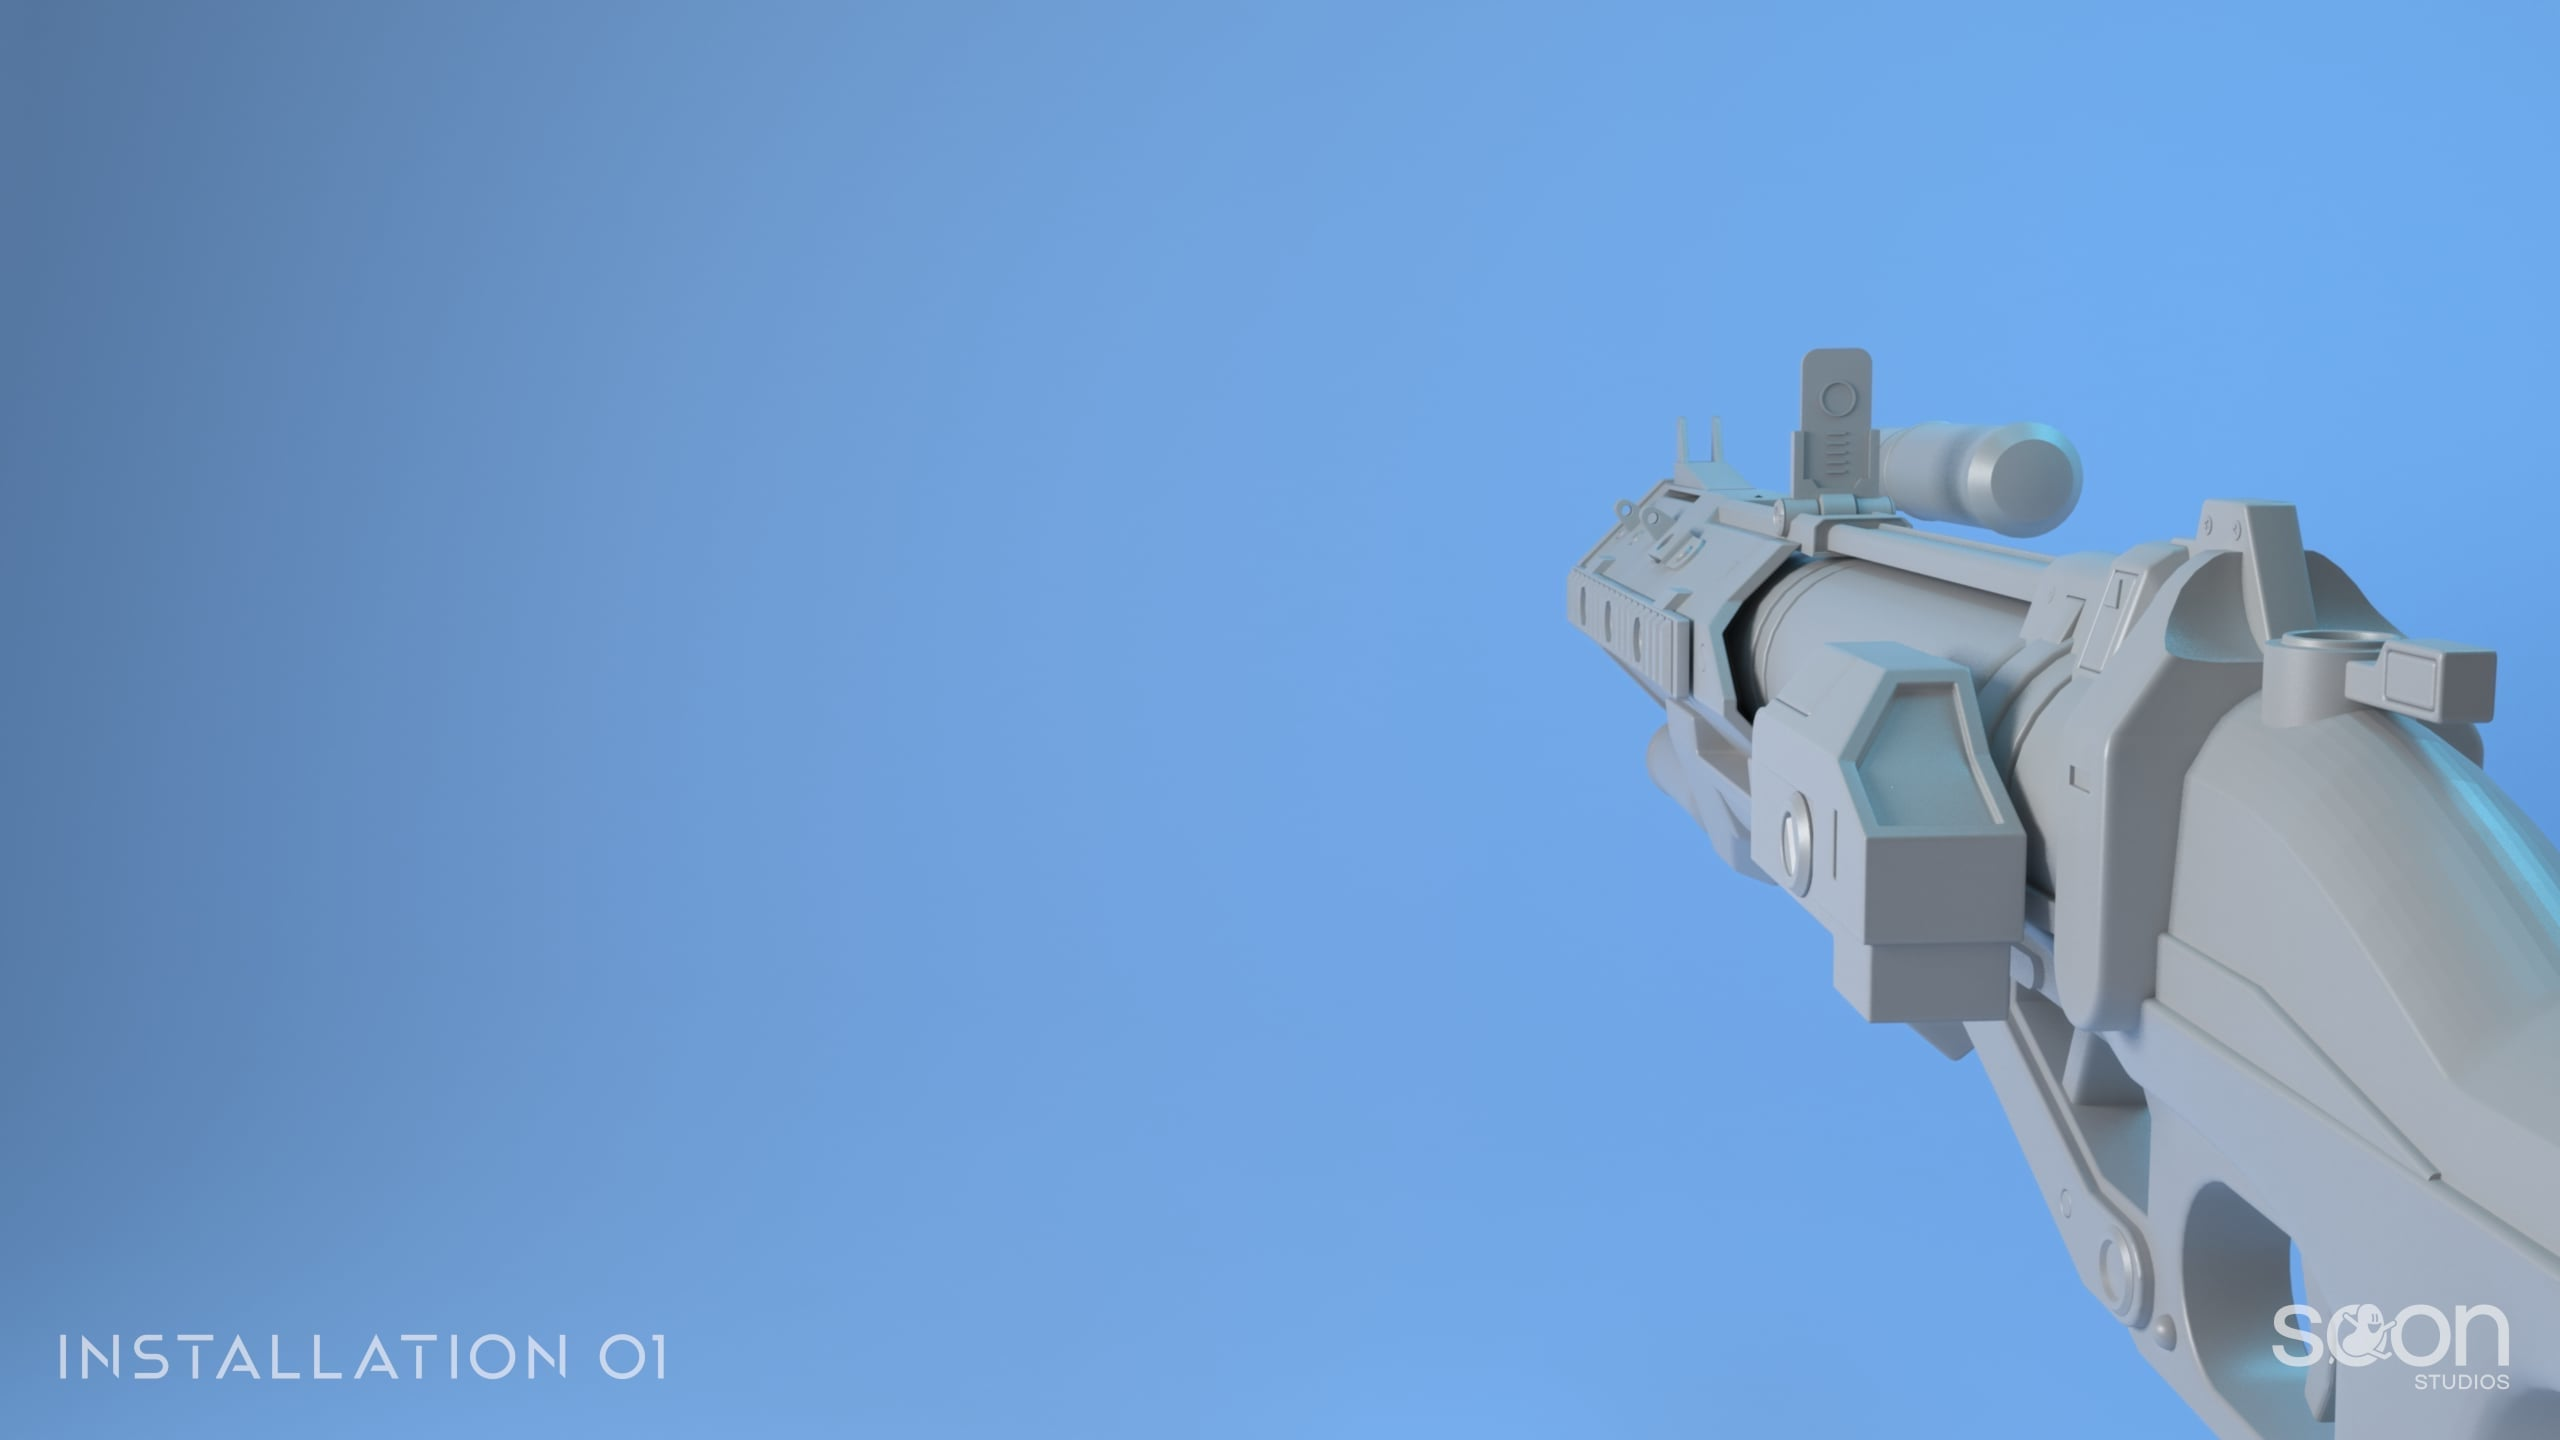 Installation 01 Grenade Launcher Model #2